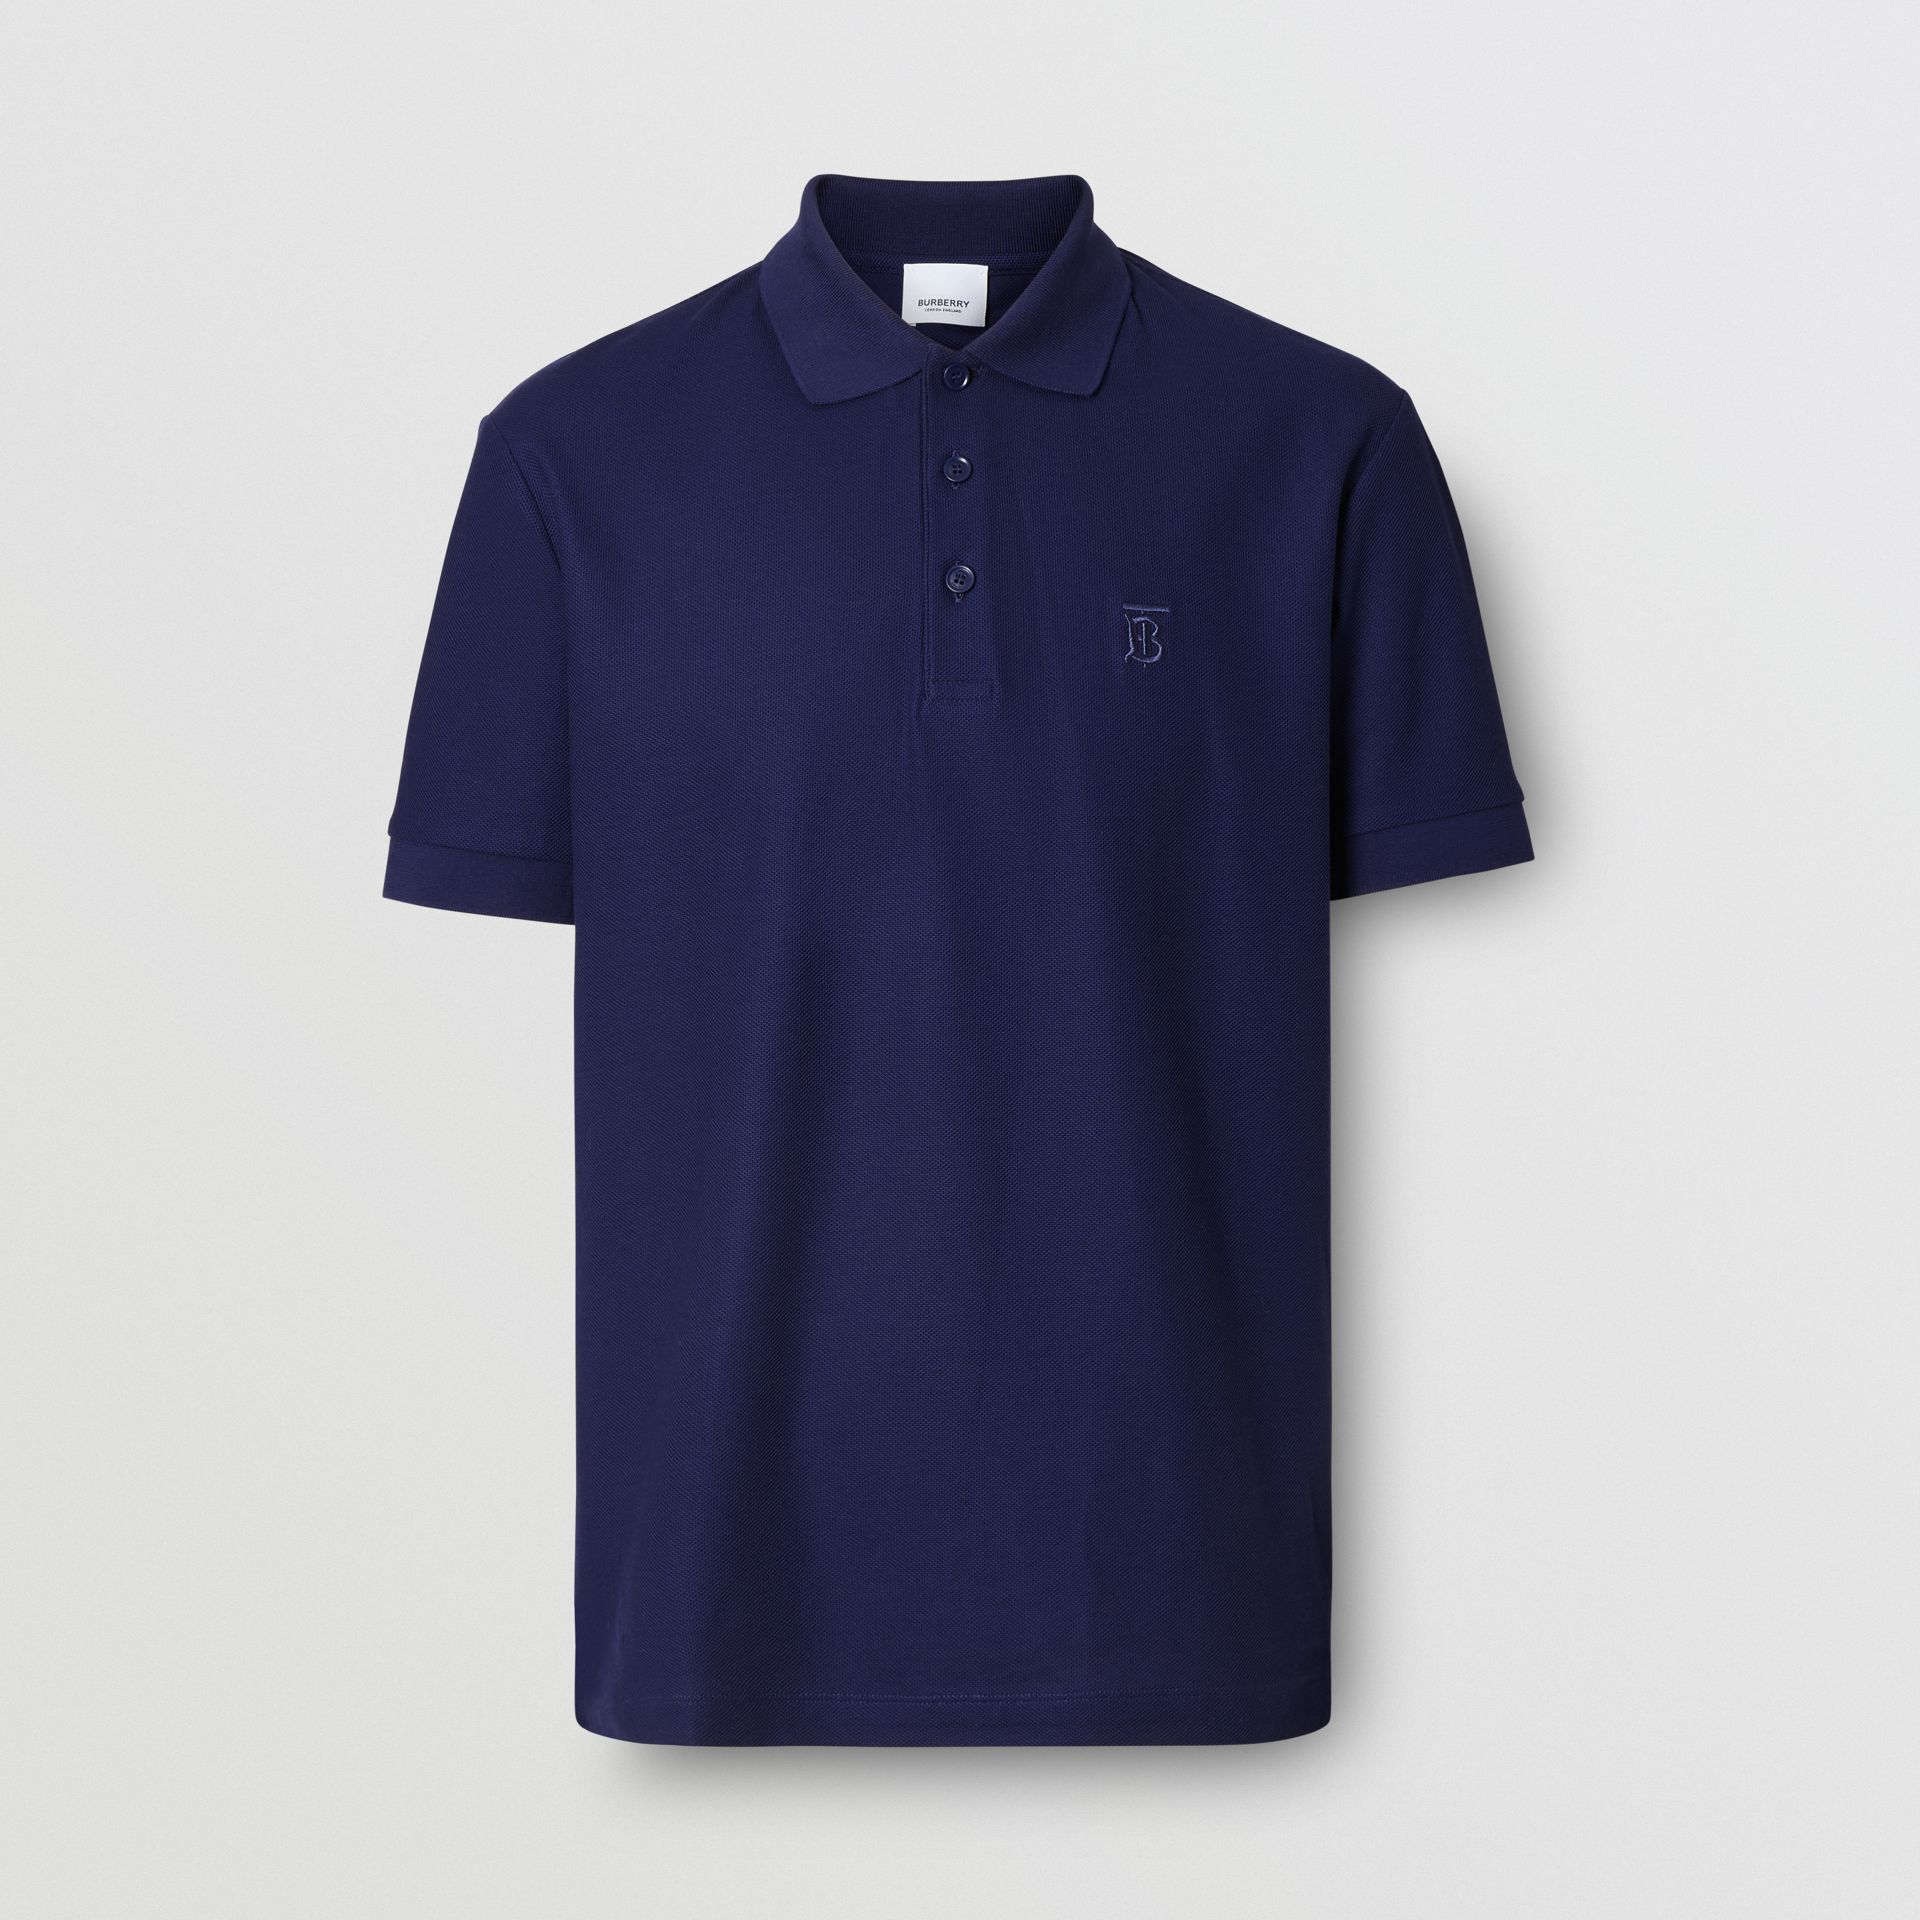 Monogram Motif Cotton Piqué Polo Shirt in Indigo - Men | Burberry - gallery image 3